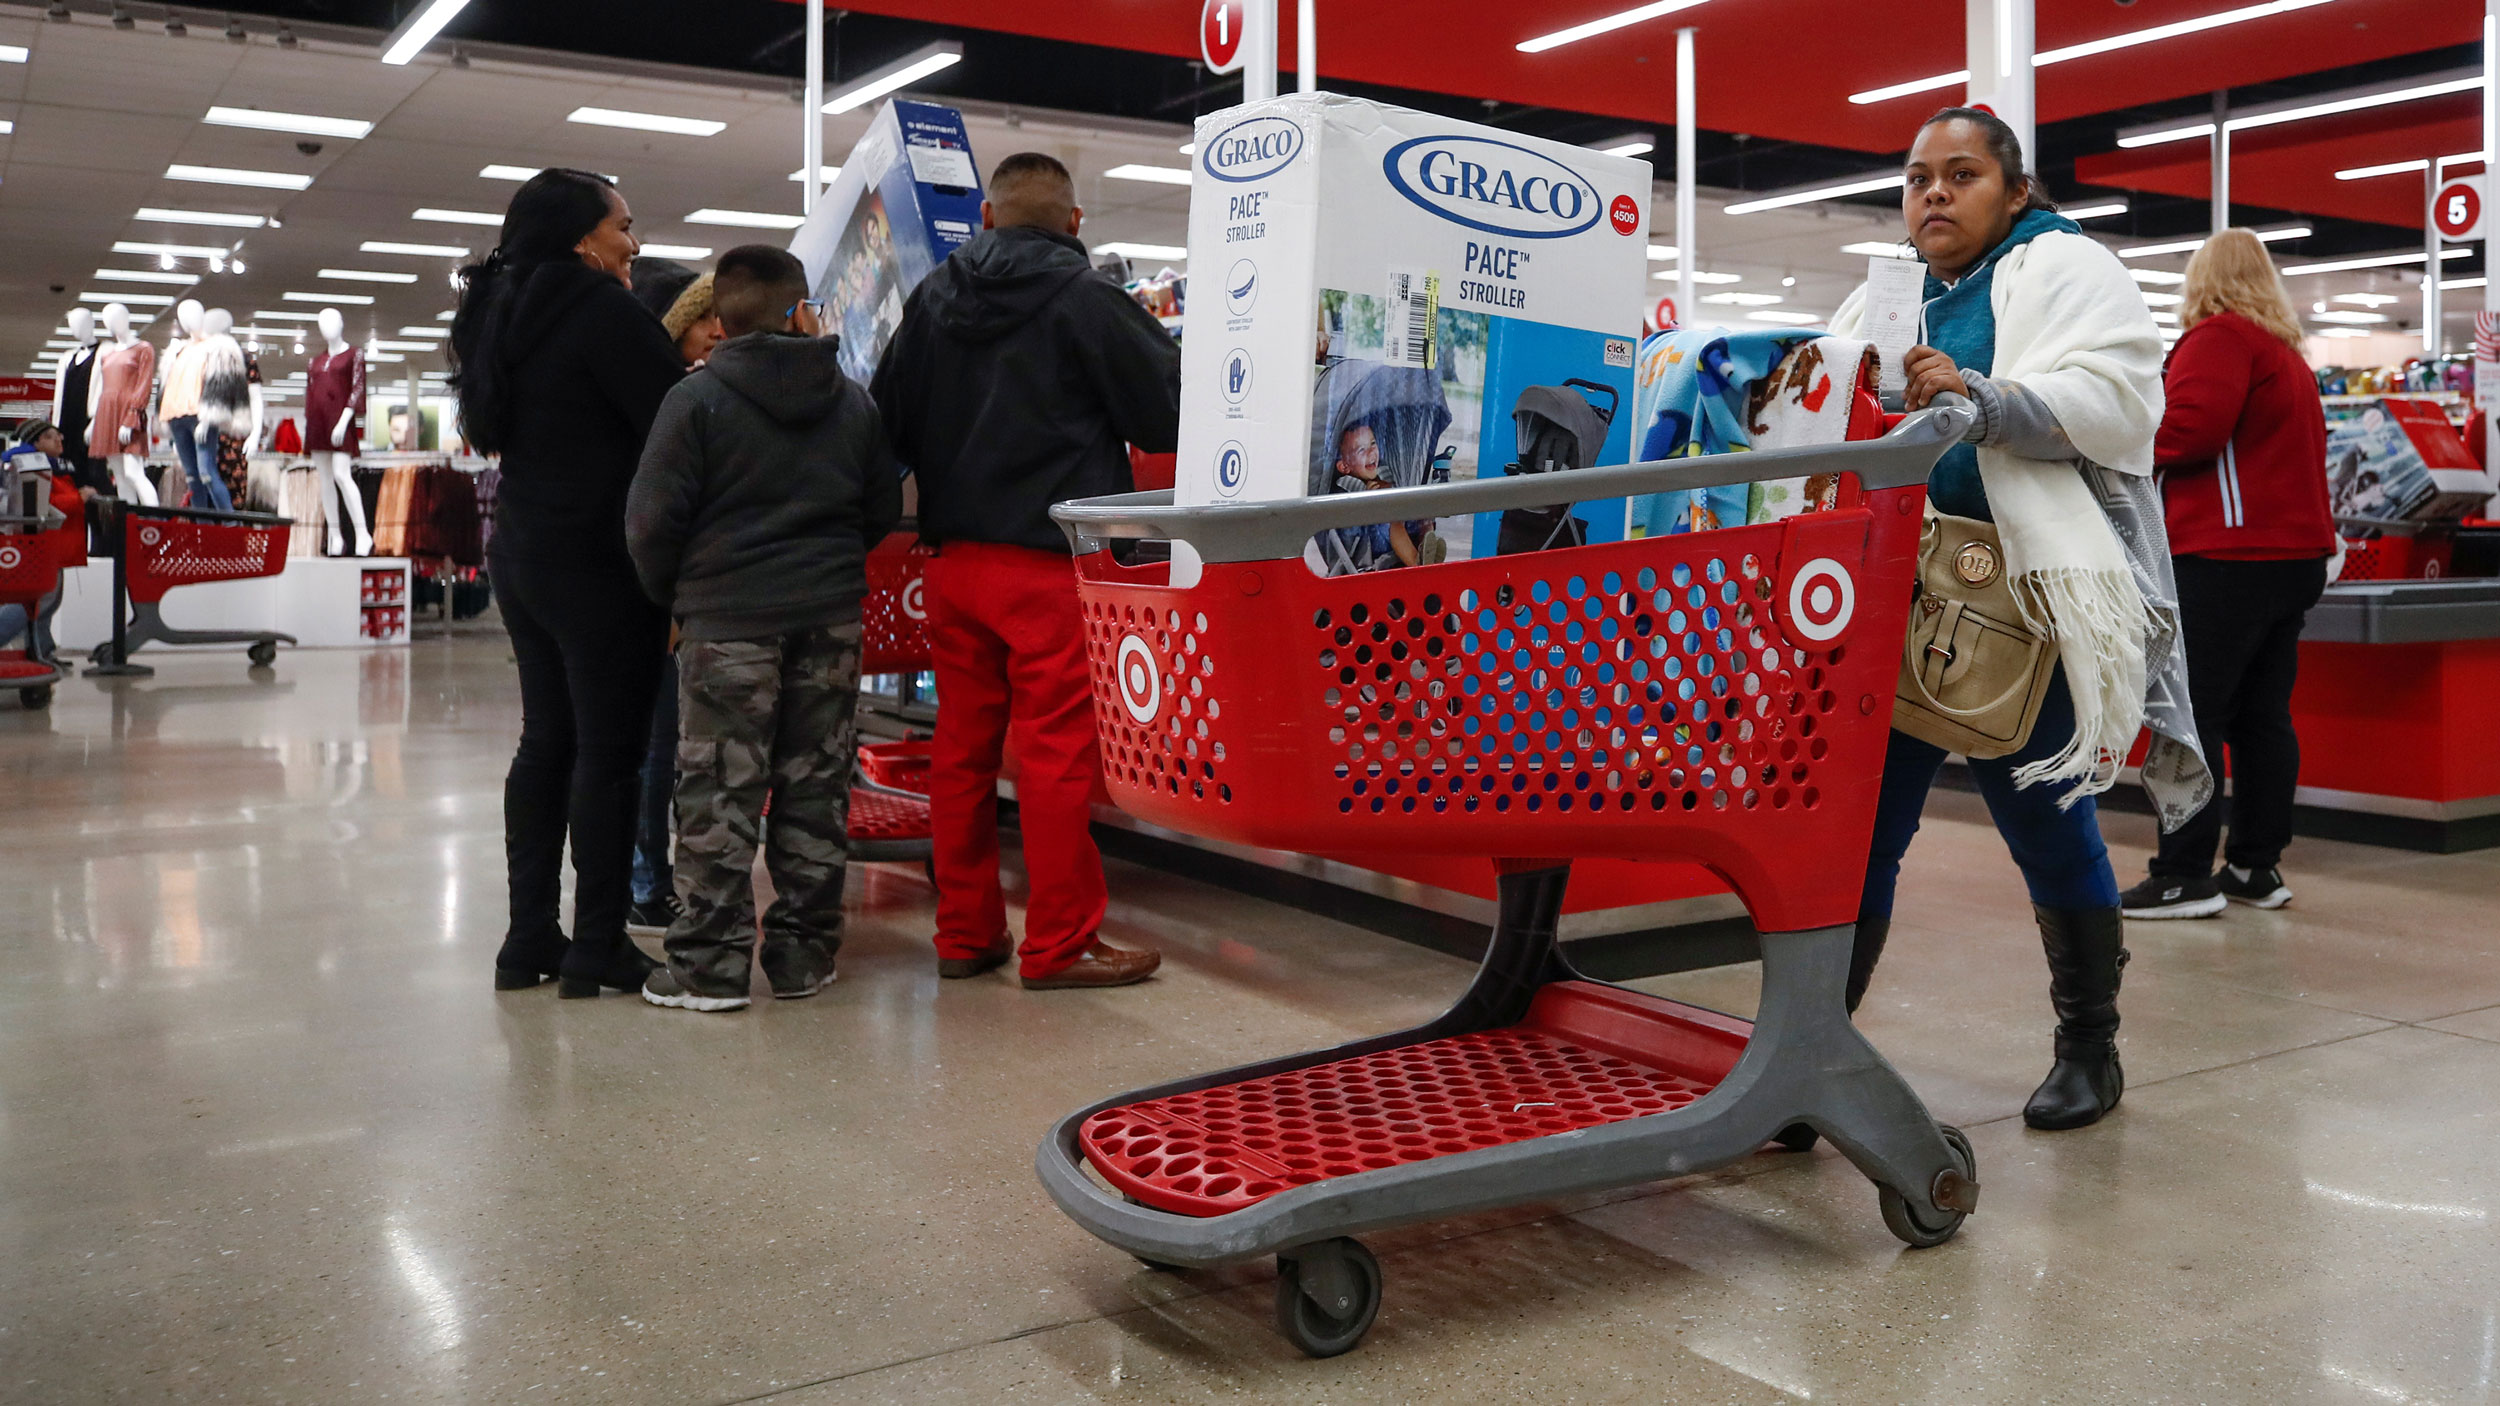 A customer pushes her shopping cart, filled with Chinese-made products, after making a purchase at a Target in Chicago, Illinois.